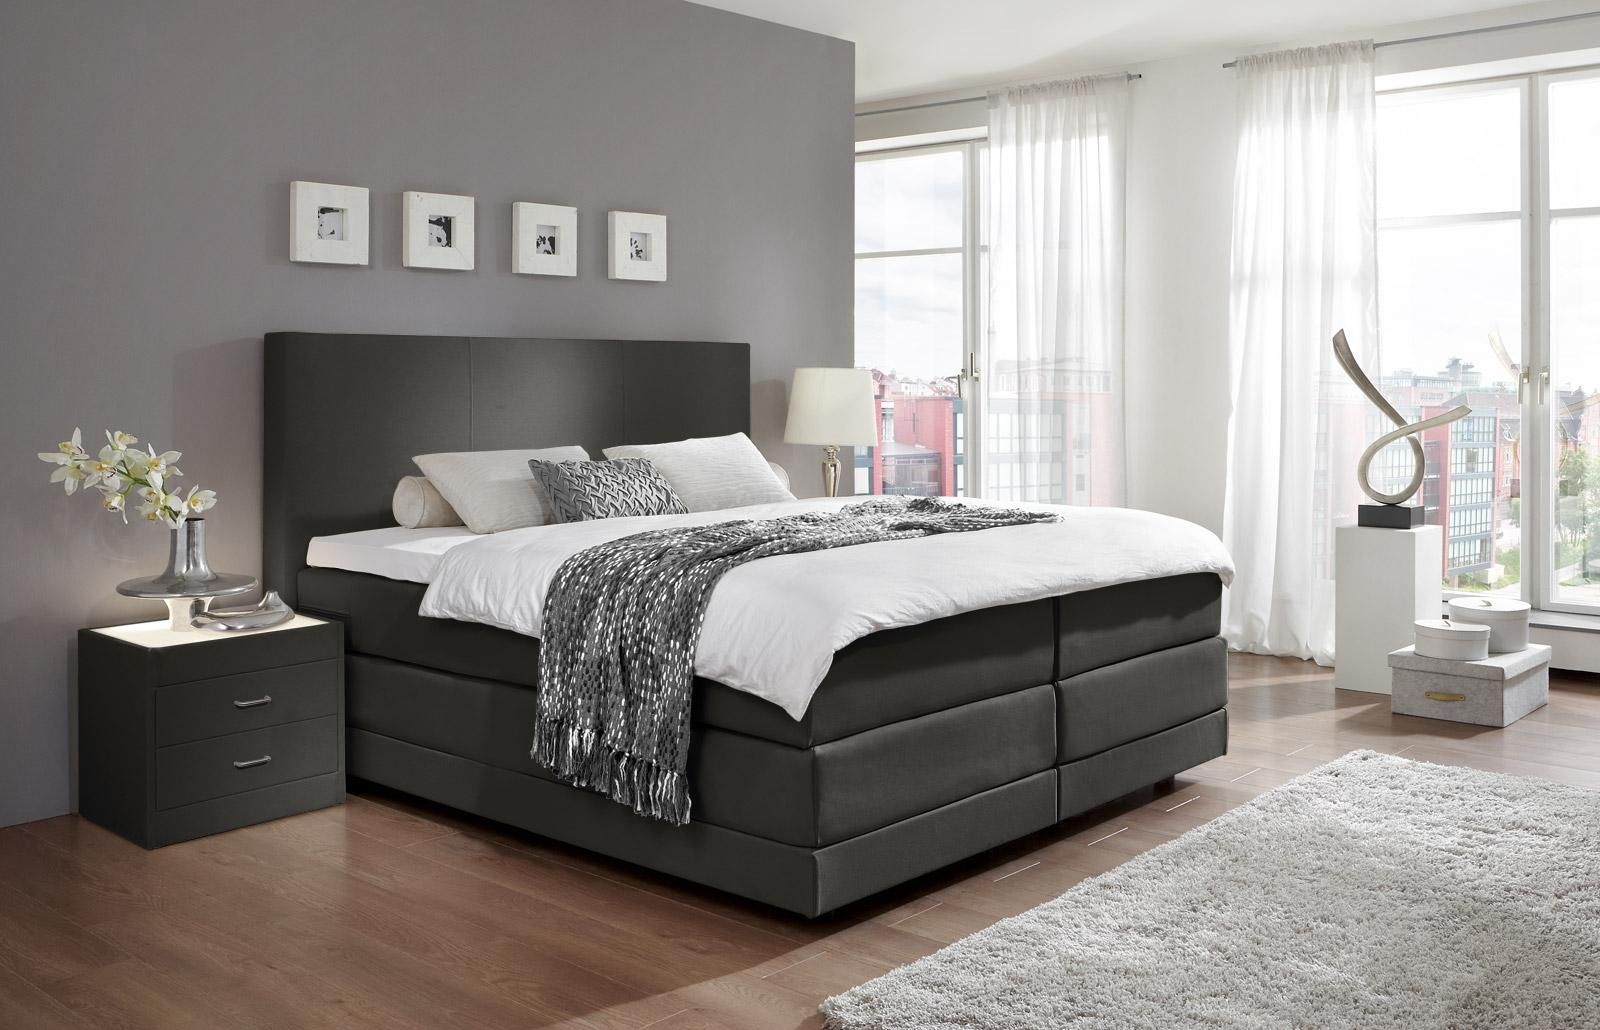 schlafzimmer boxspringbett komplett schlafzimmer schlafzimmer bett graues. Black Bedroom Furniture Sets. Home Design Ideas